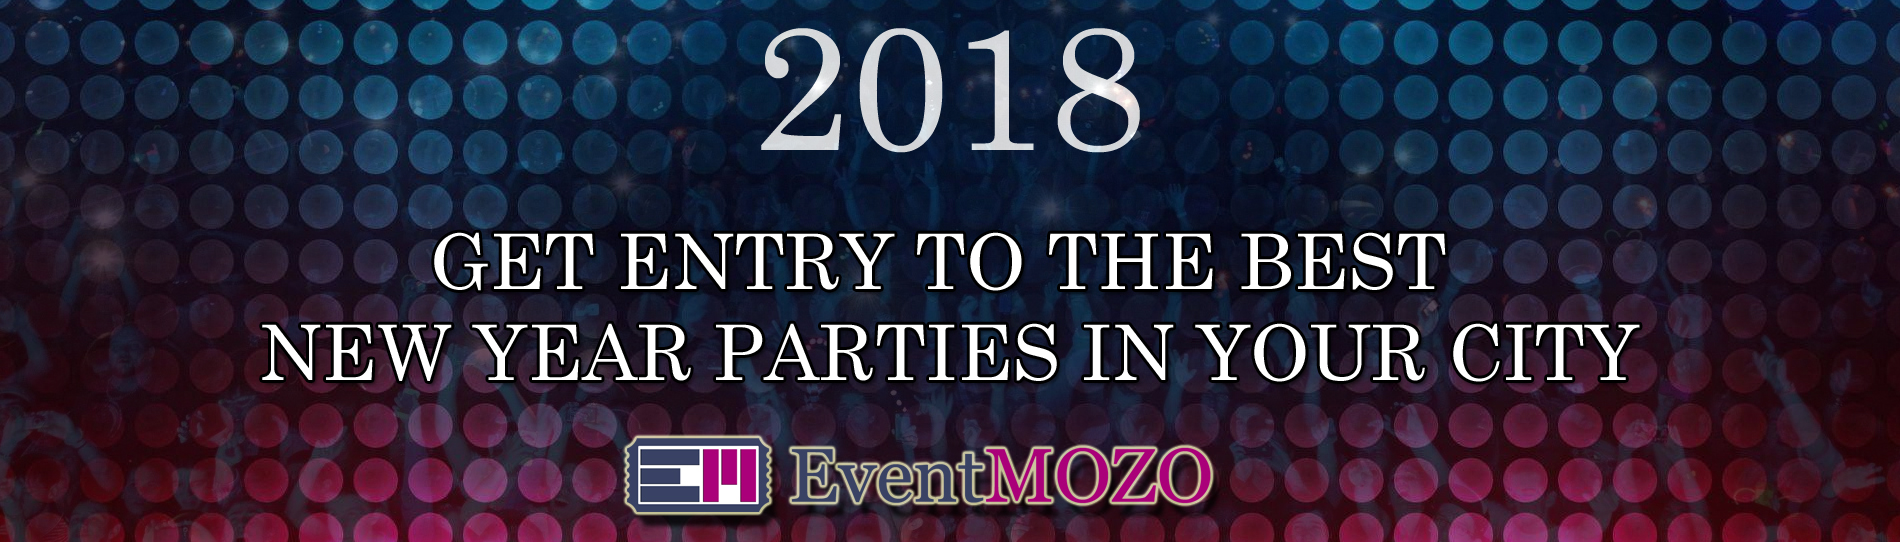 EventMozo Best New Year Parties in Bay Area